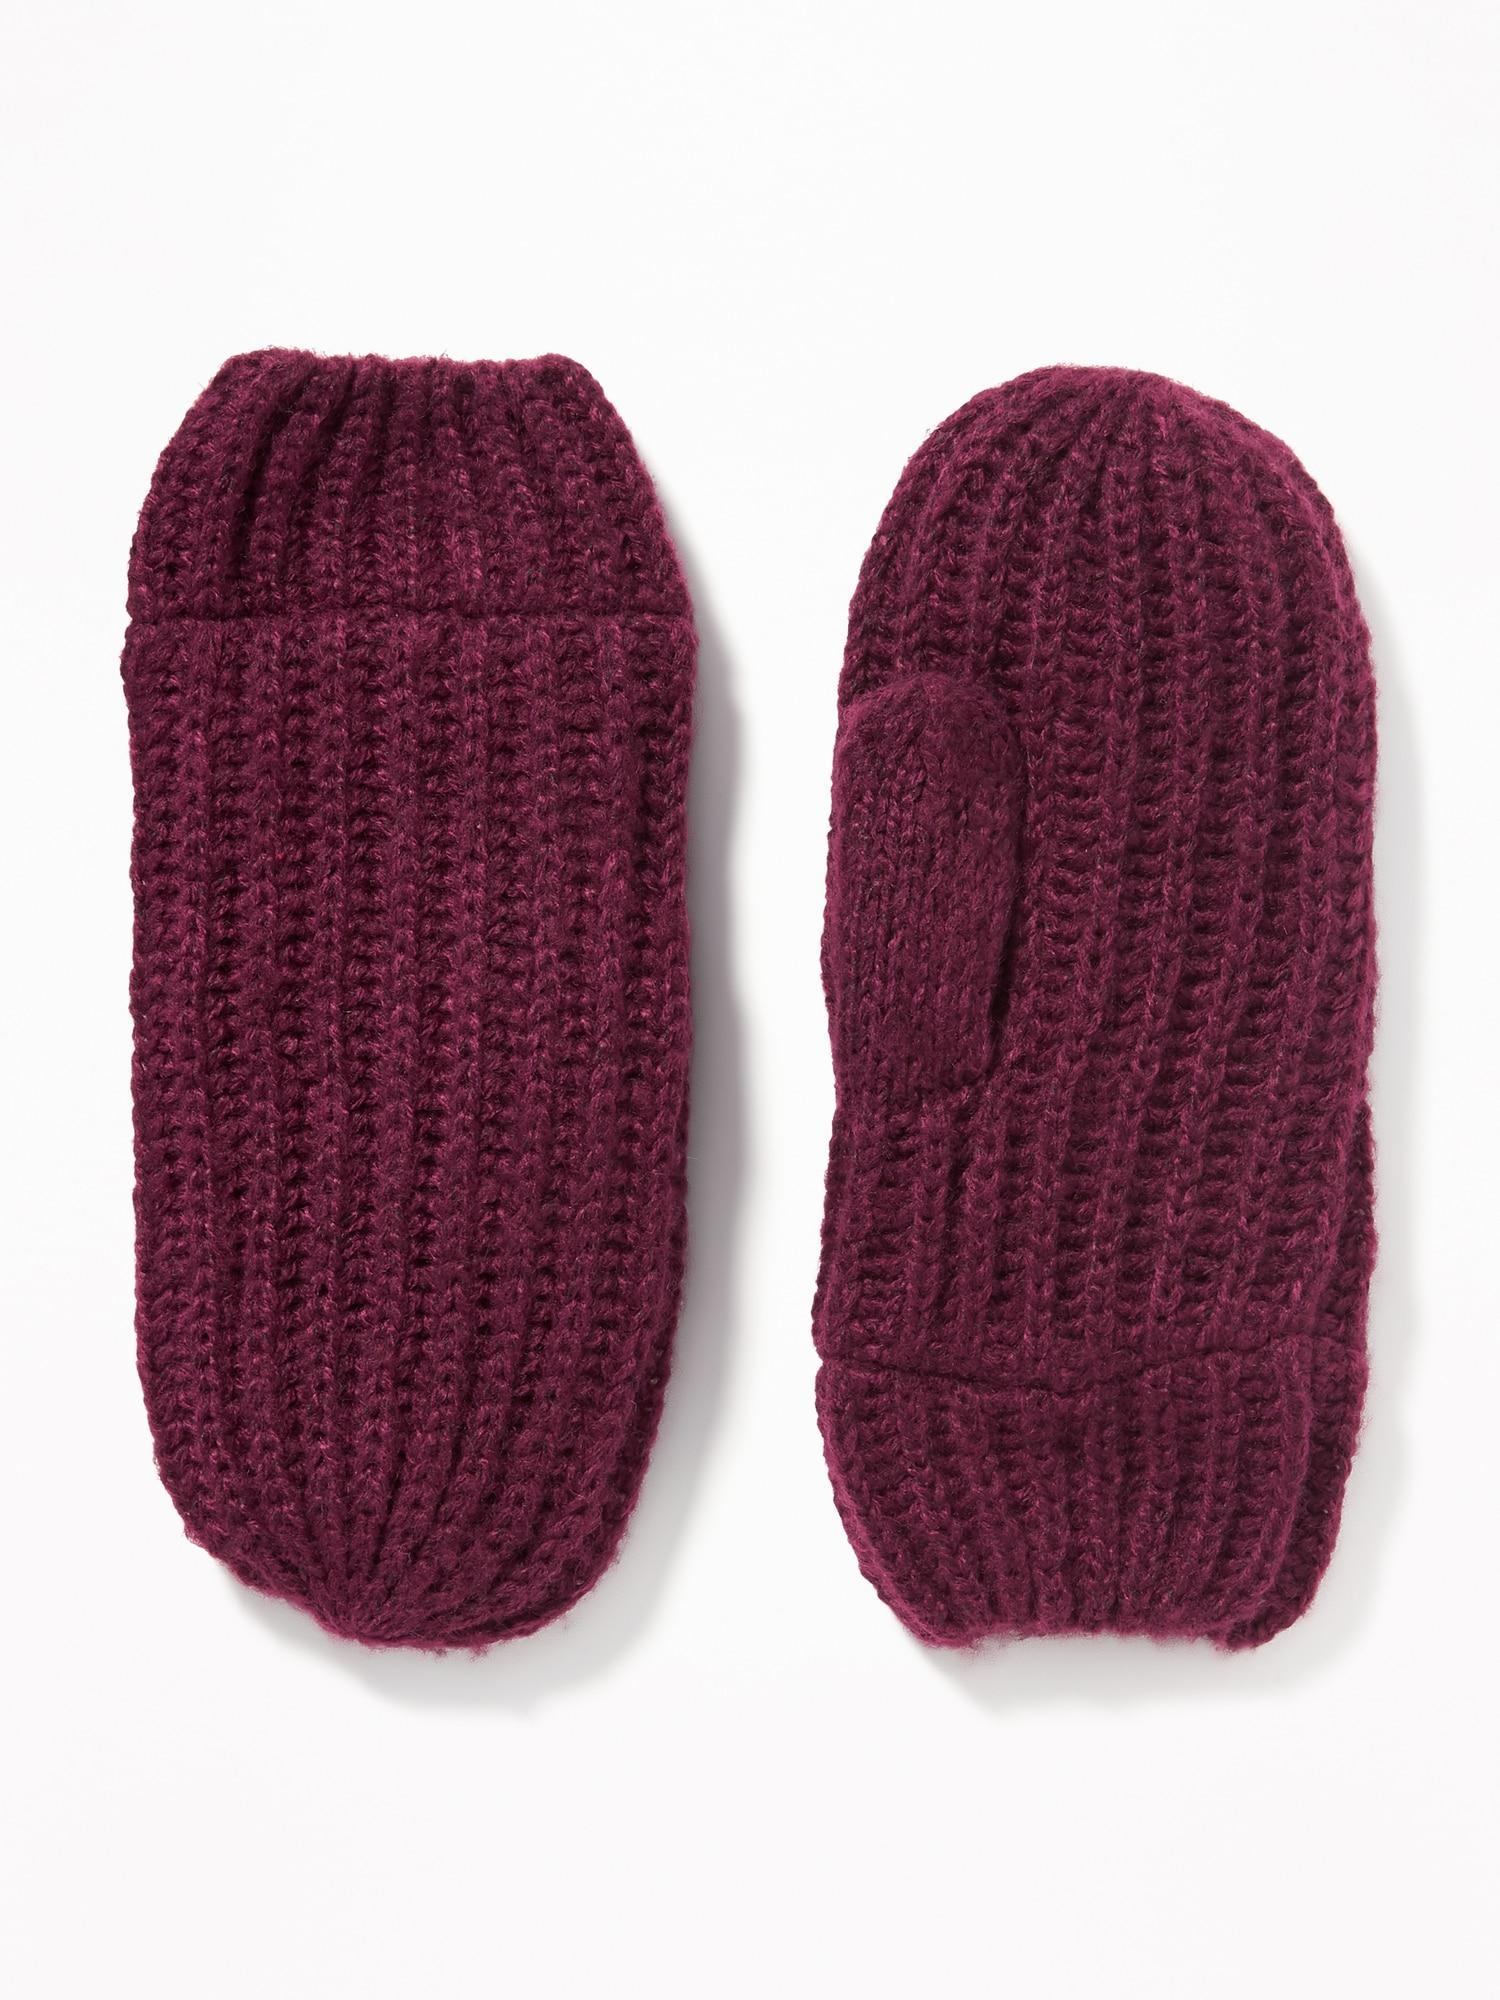 32c4f7167 Lyst - Old Navy Rib-knit Mittens in Purple